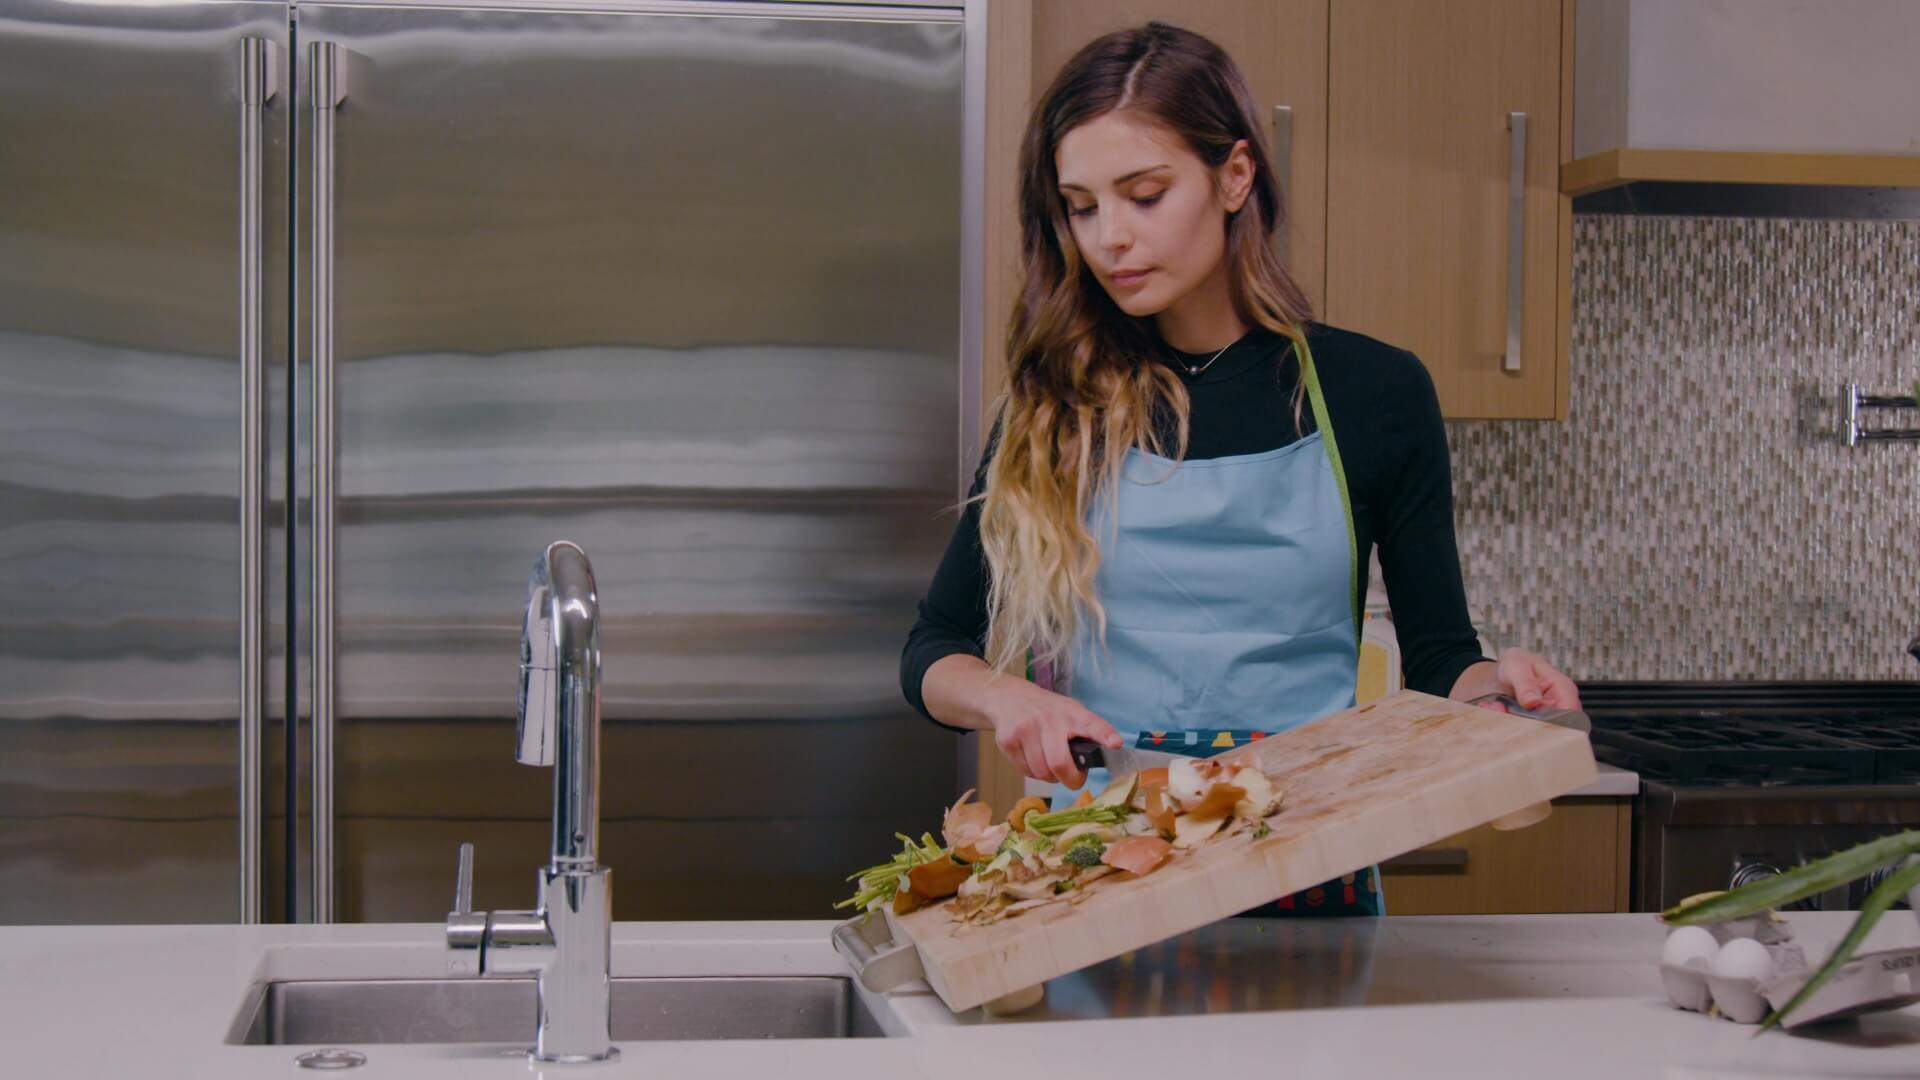 A woman brushing food from a cutting board into her sink.